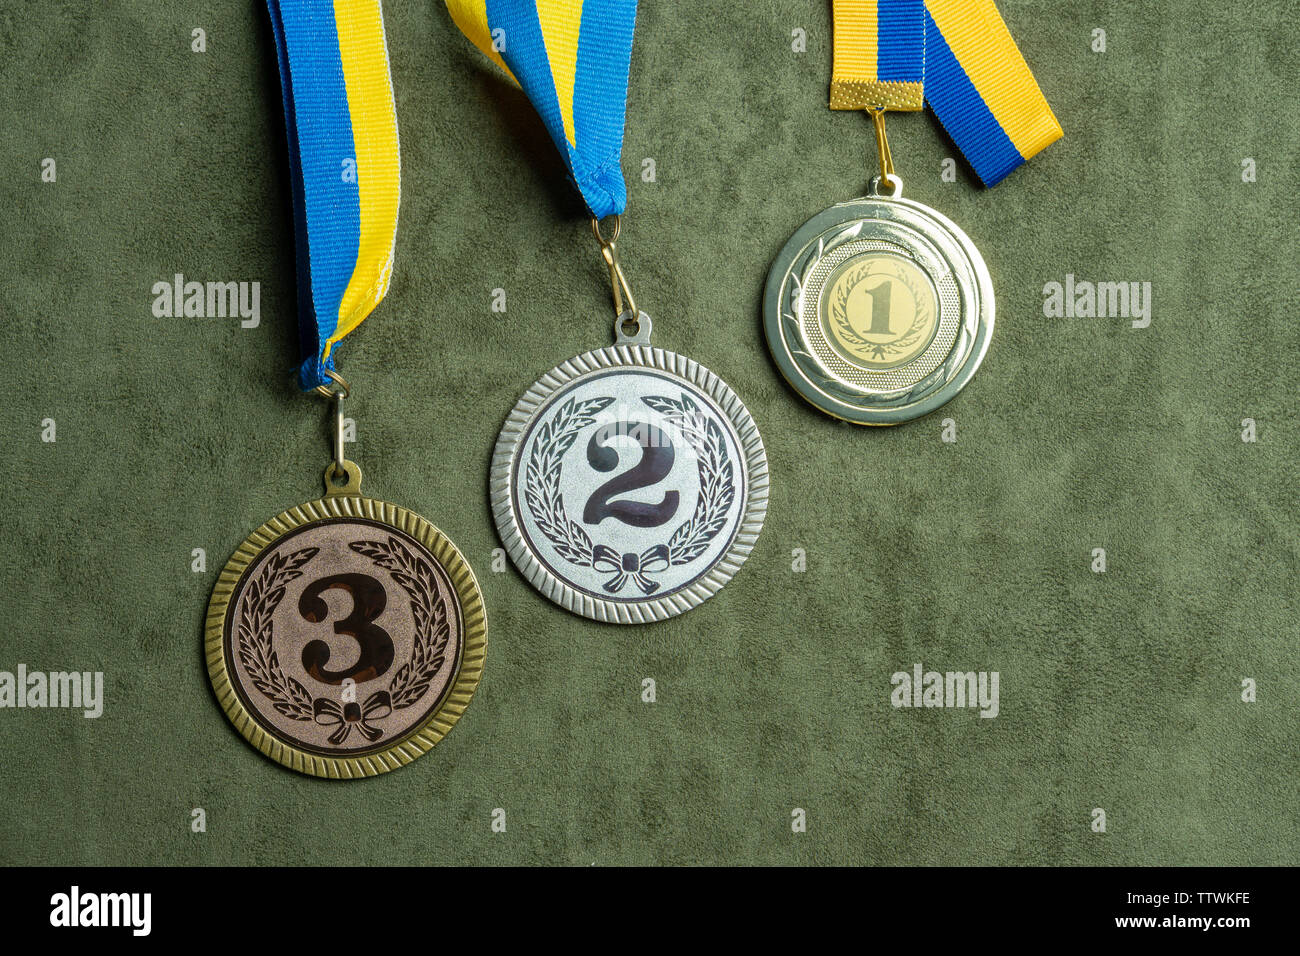 Gold, silver or bronze medal with yellow and blue ribbons - Stock Image